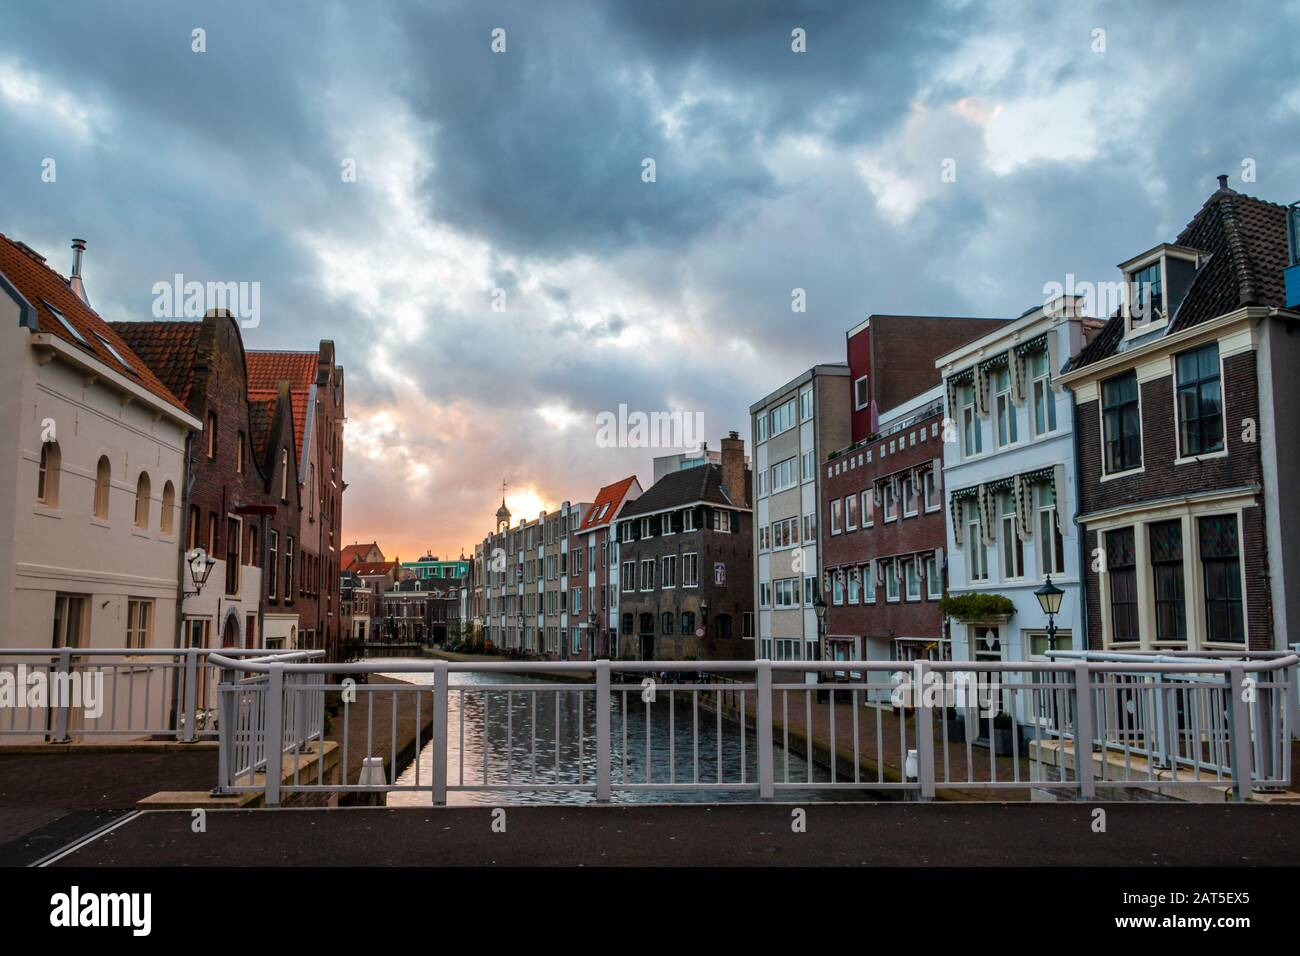 The center of Schiedam with beautiful narrow streets and small canals, photo taken in the evening hours with beautiful orange and blue clouds. Provinc Stock Photo